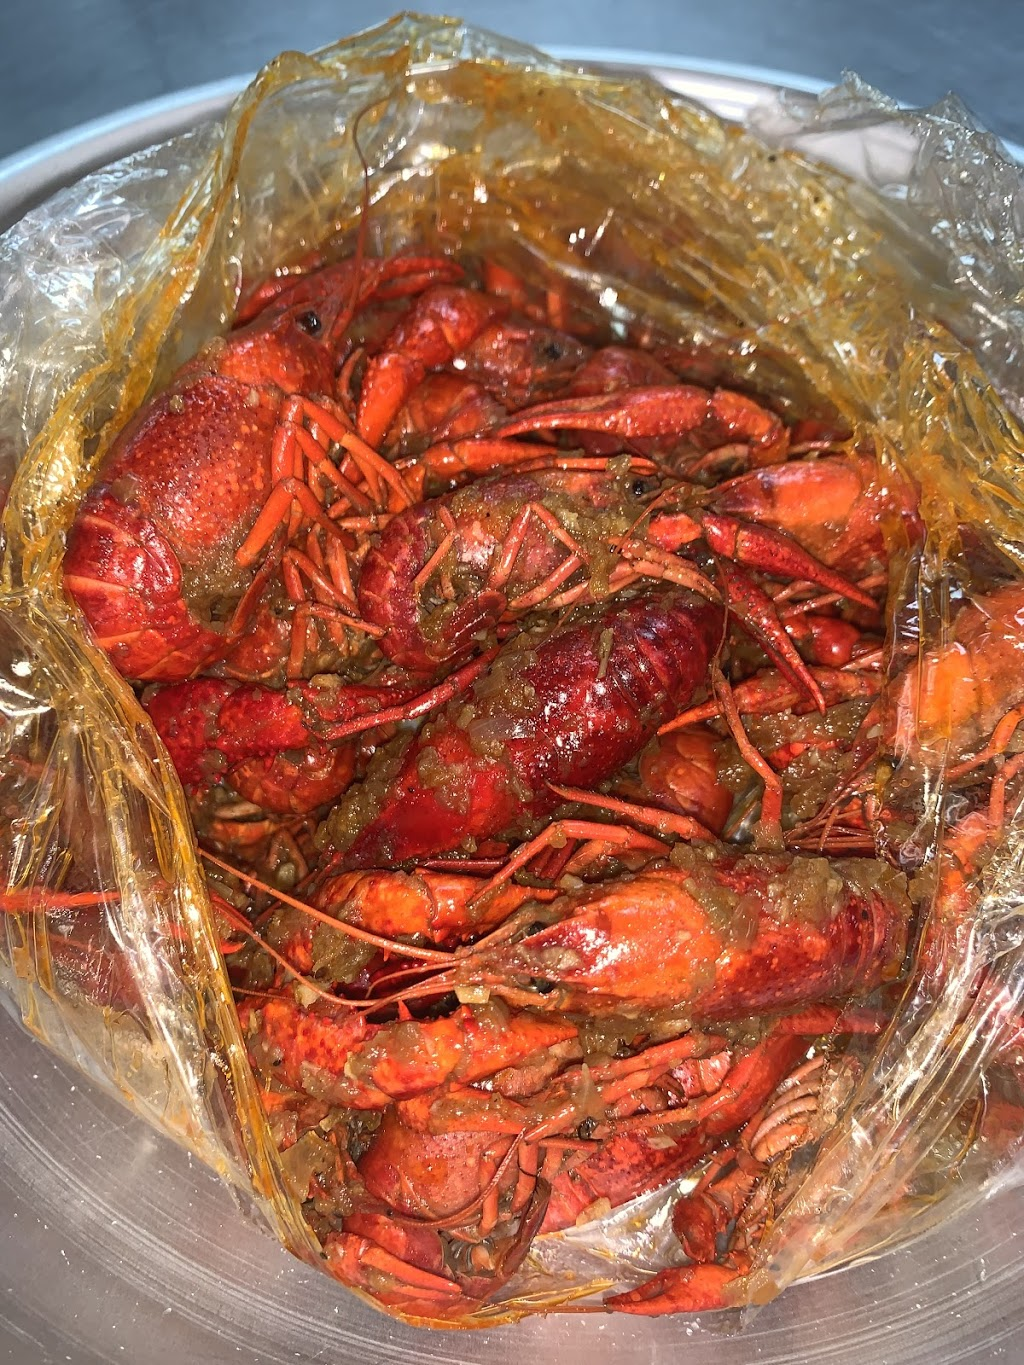 New Orleans Crab Shack   restaurant   901 W Spring Creek Pkwy Suite 125, Plano, TX 75023, USA   4696263036 OR +1 469-626-3036